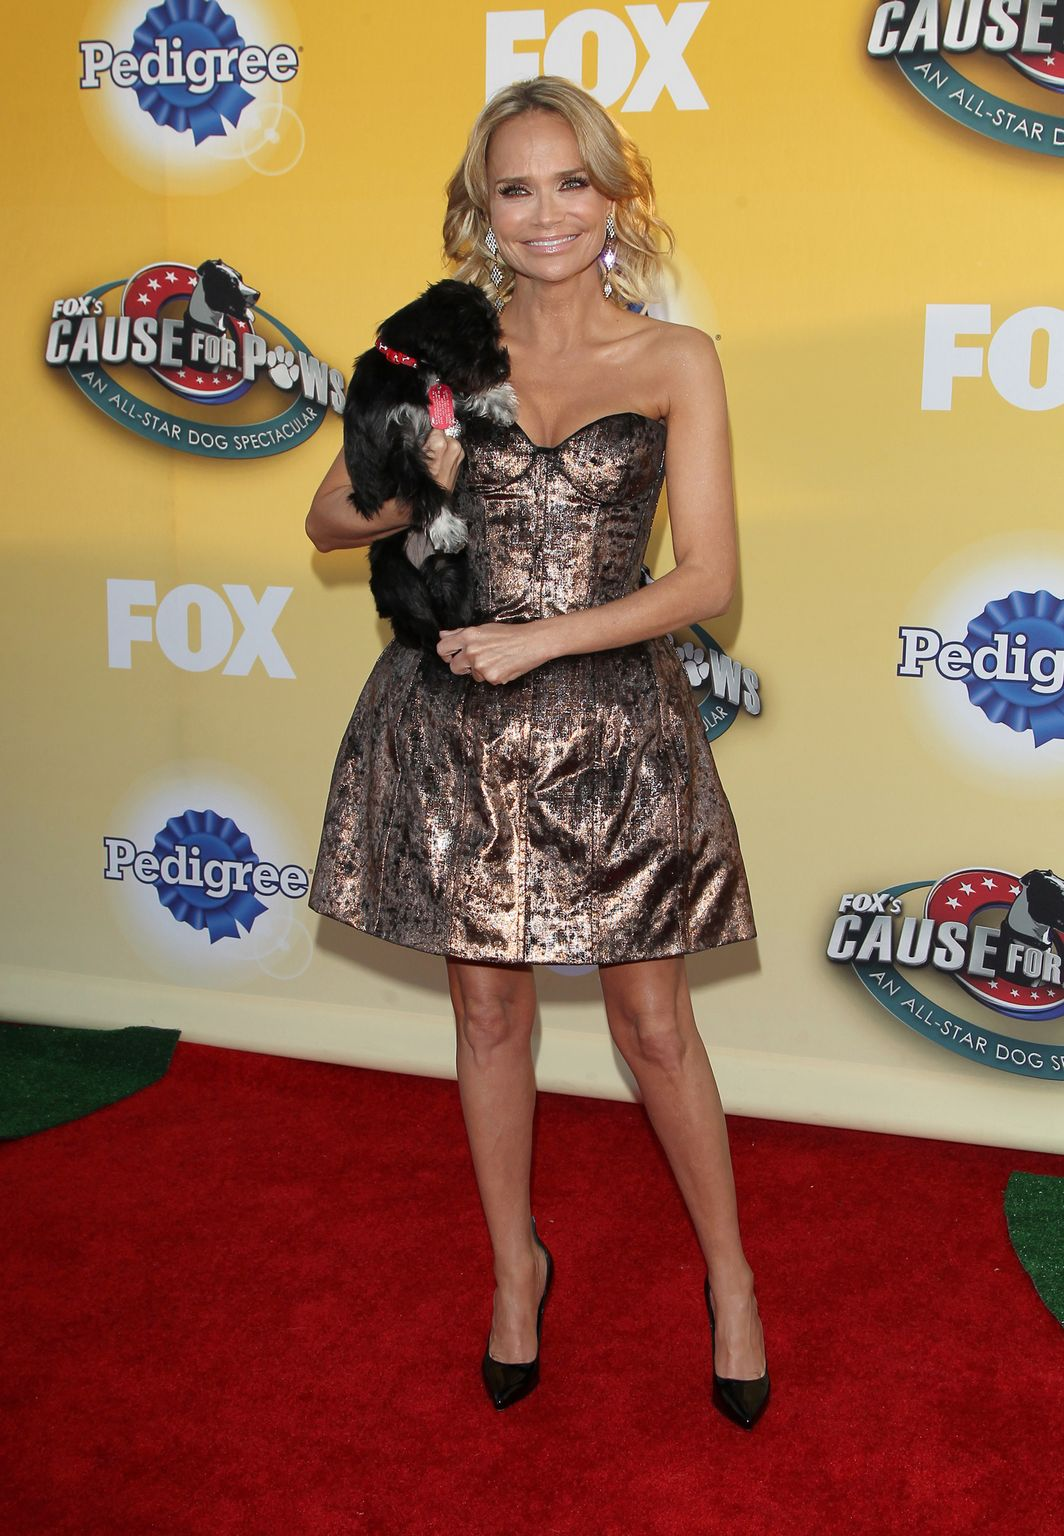 Kristin Chenoweth FOX's Cause For Paws An All-Star Dog Spectacular in Santa Monica